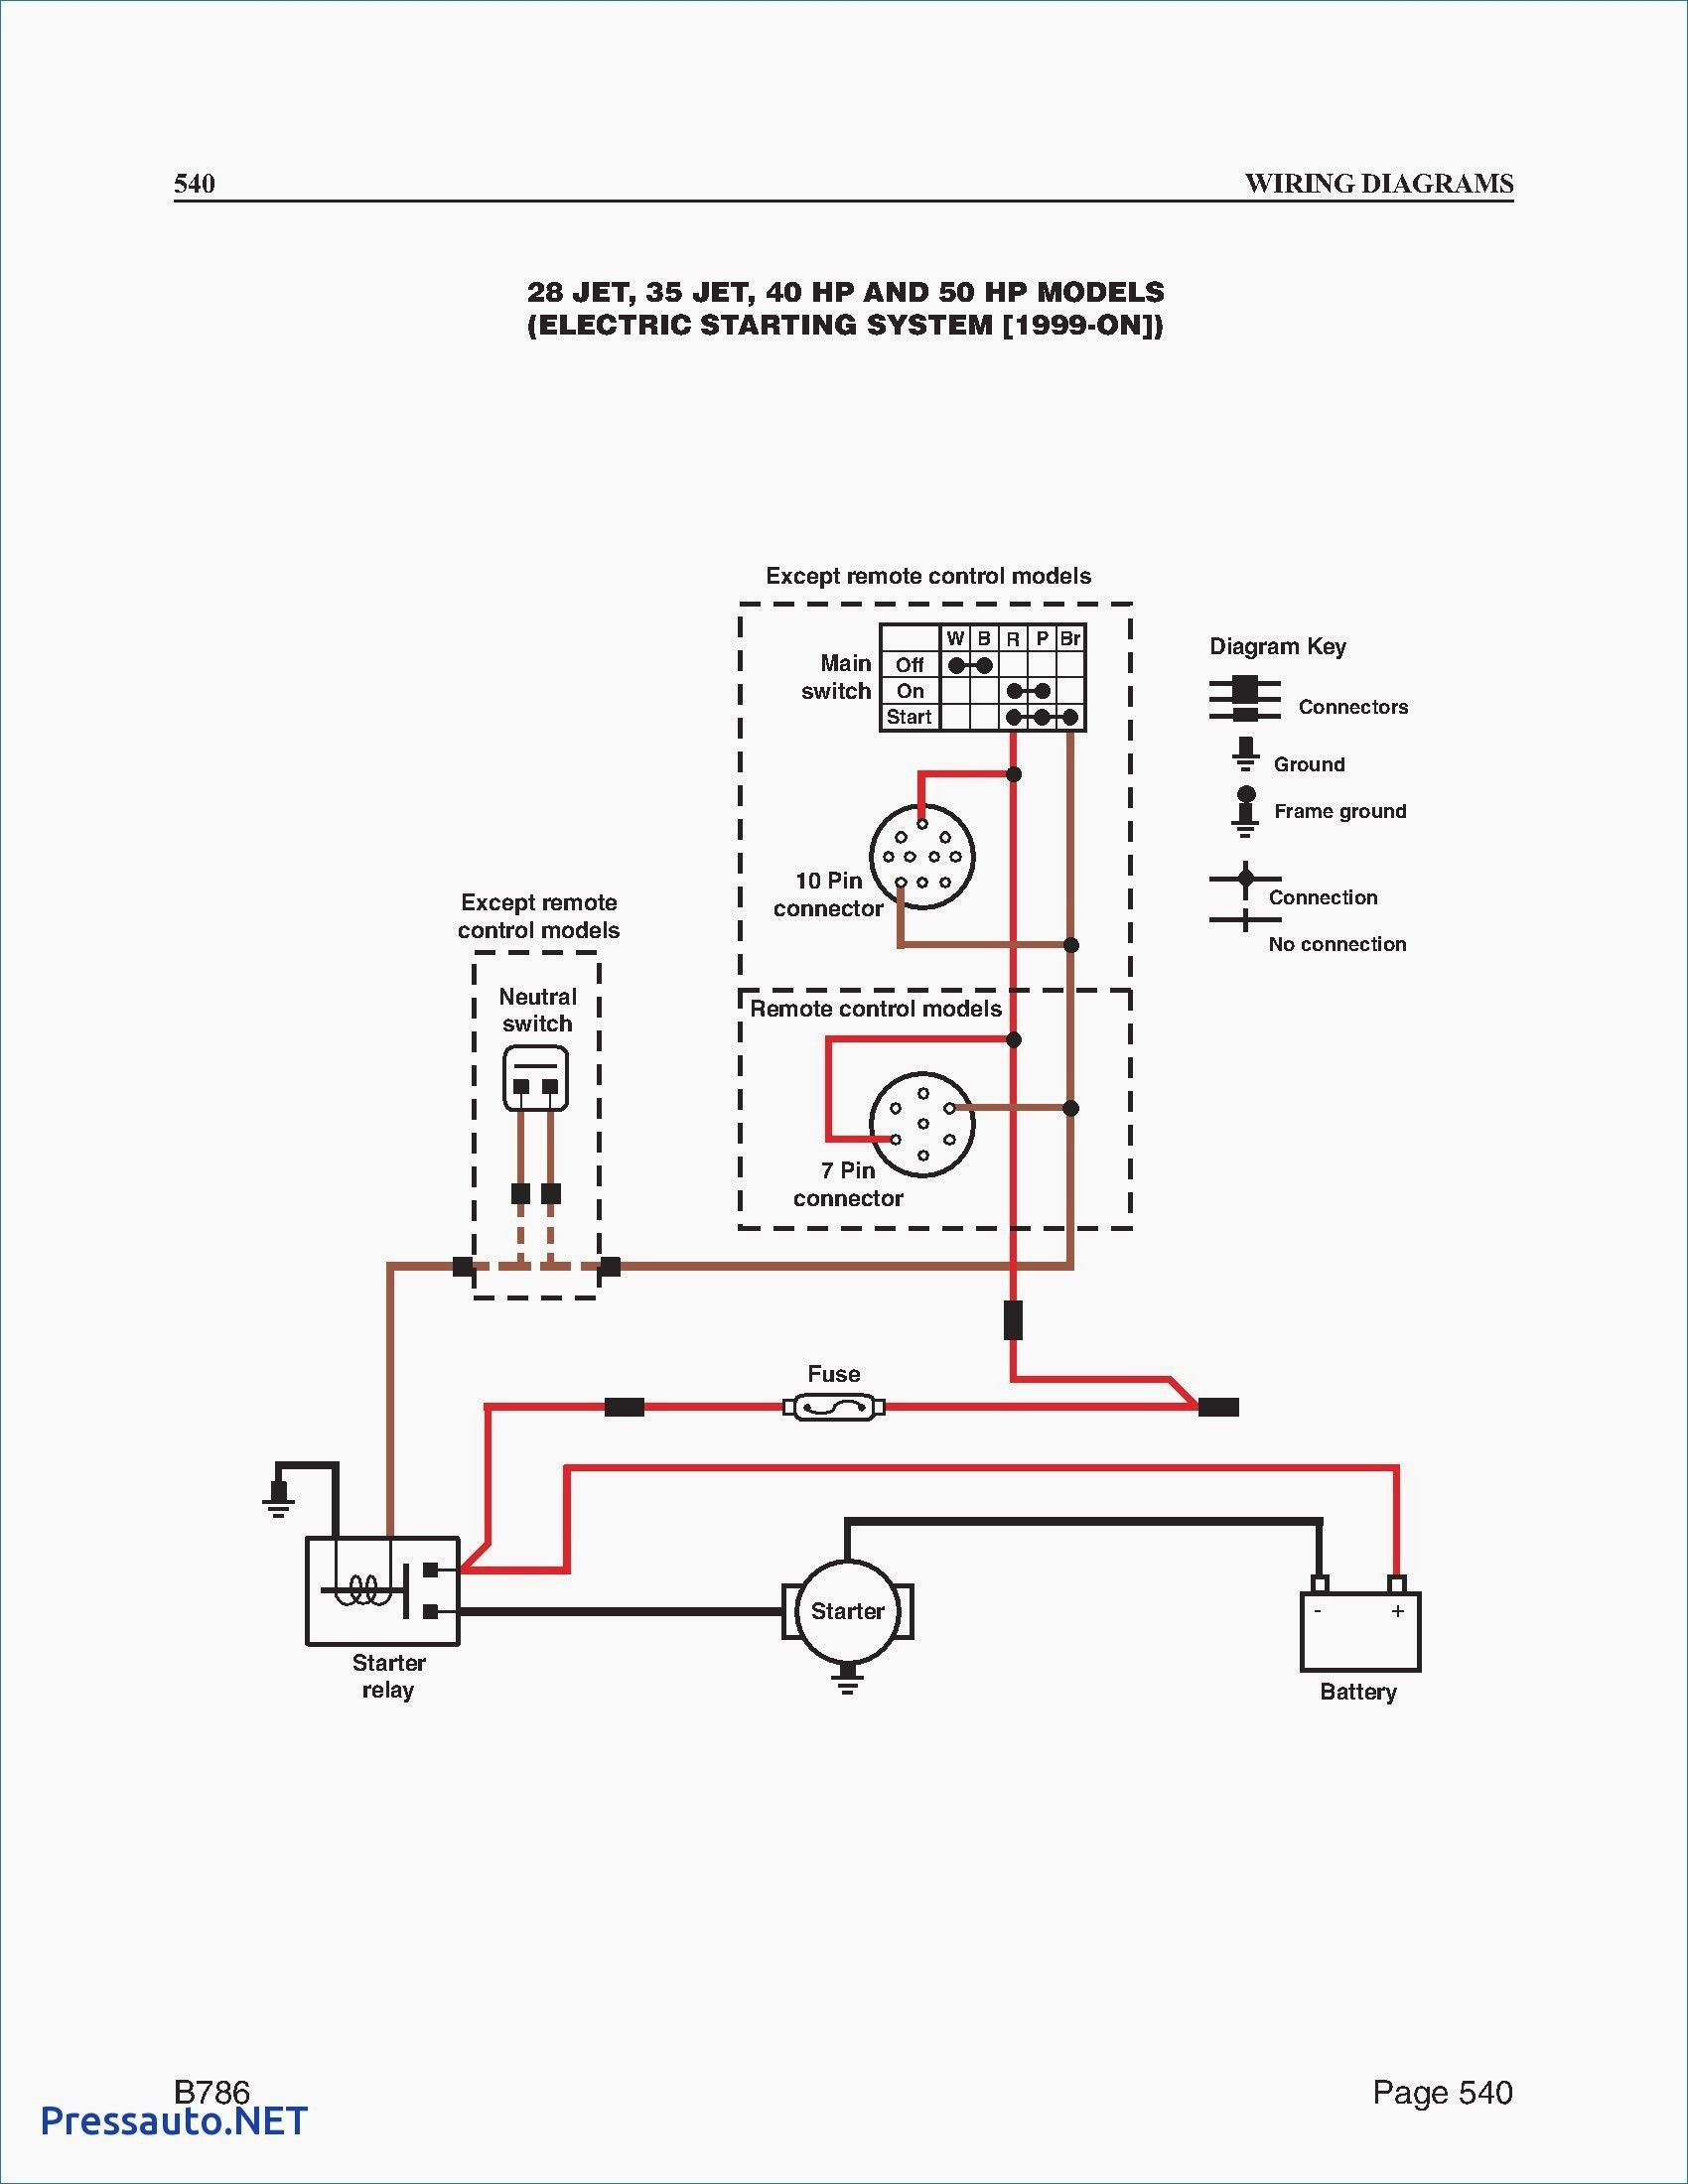 Unique Comcast Home Wiring Diagram Diagram Diagramsample Diagramtemplate Wiringdiagram Diagramchart Worksheet Worksh Diagram House Wiring Diagram Design